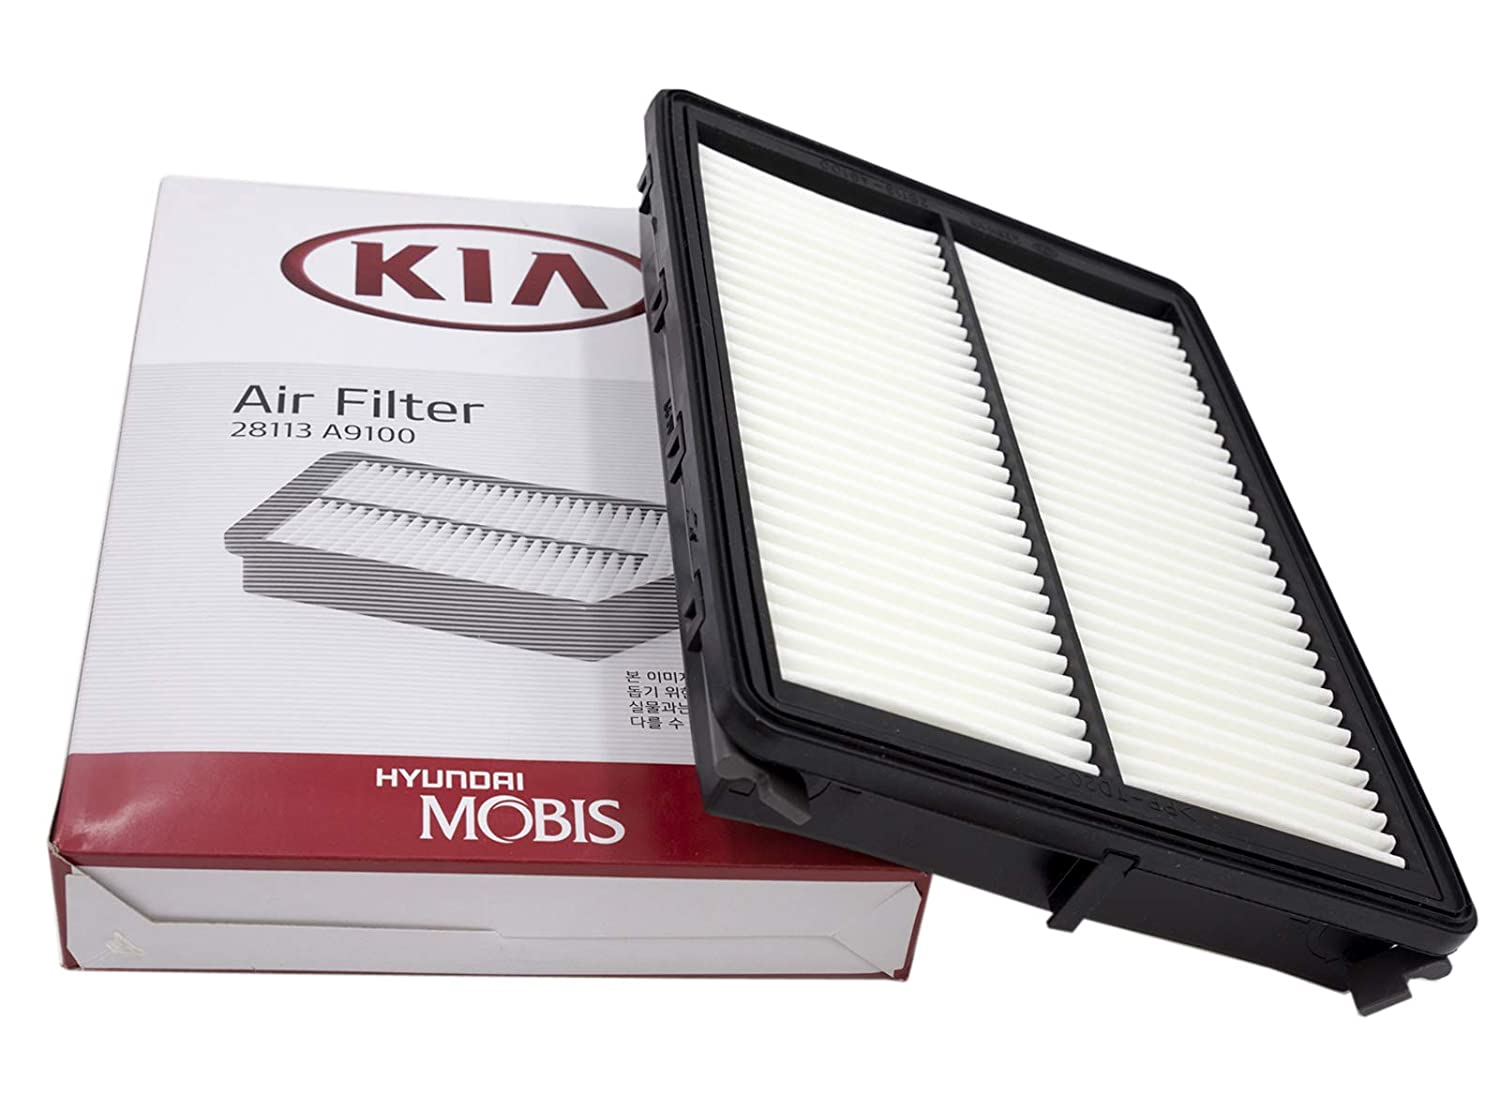 Kia Genuine Air FIlter, 28113-A9100